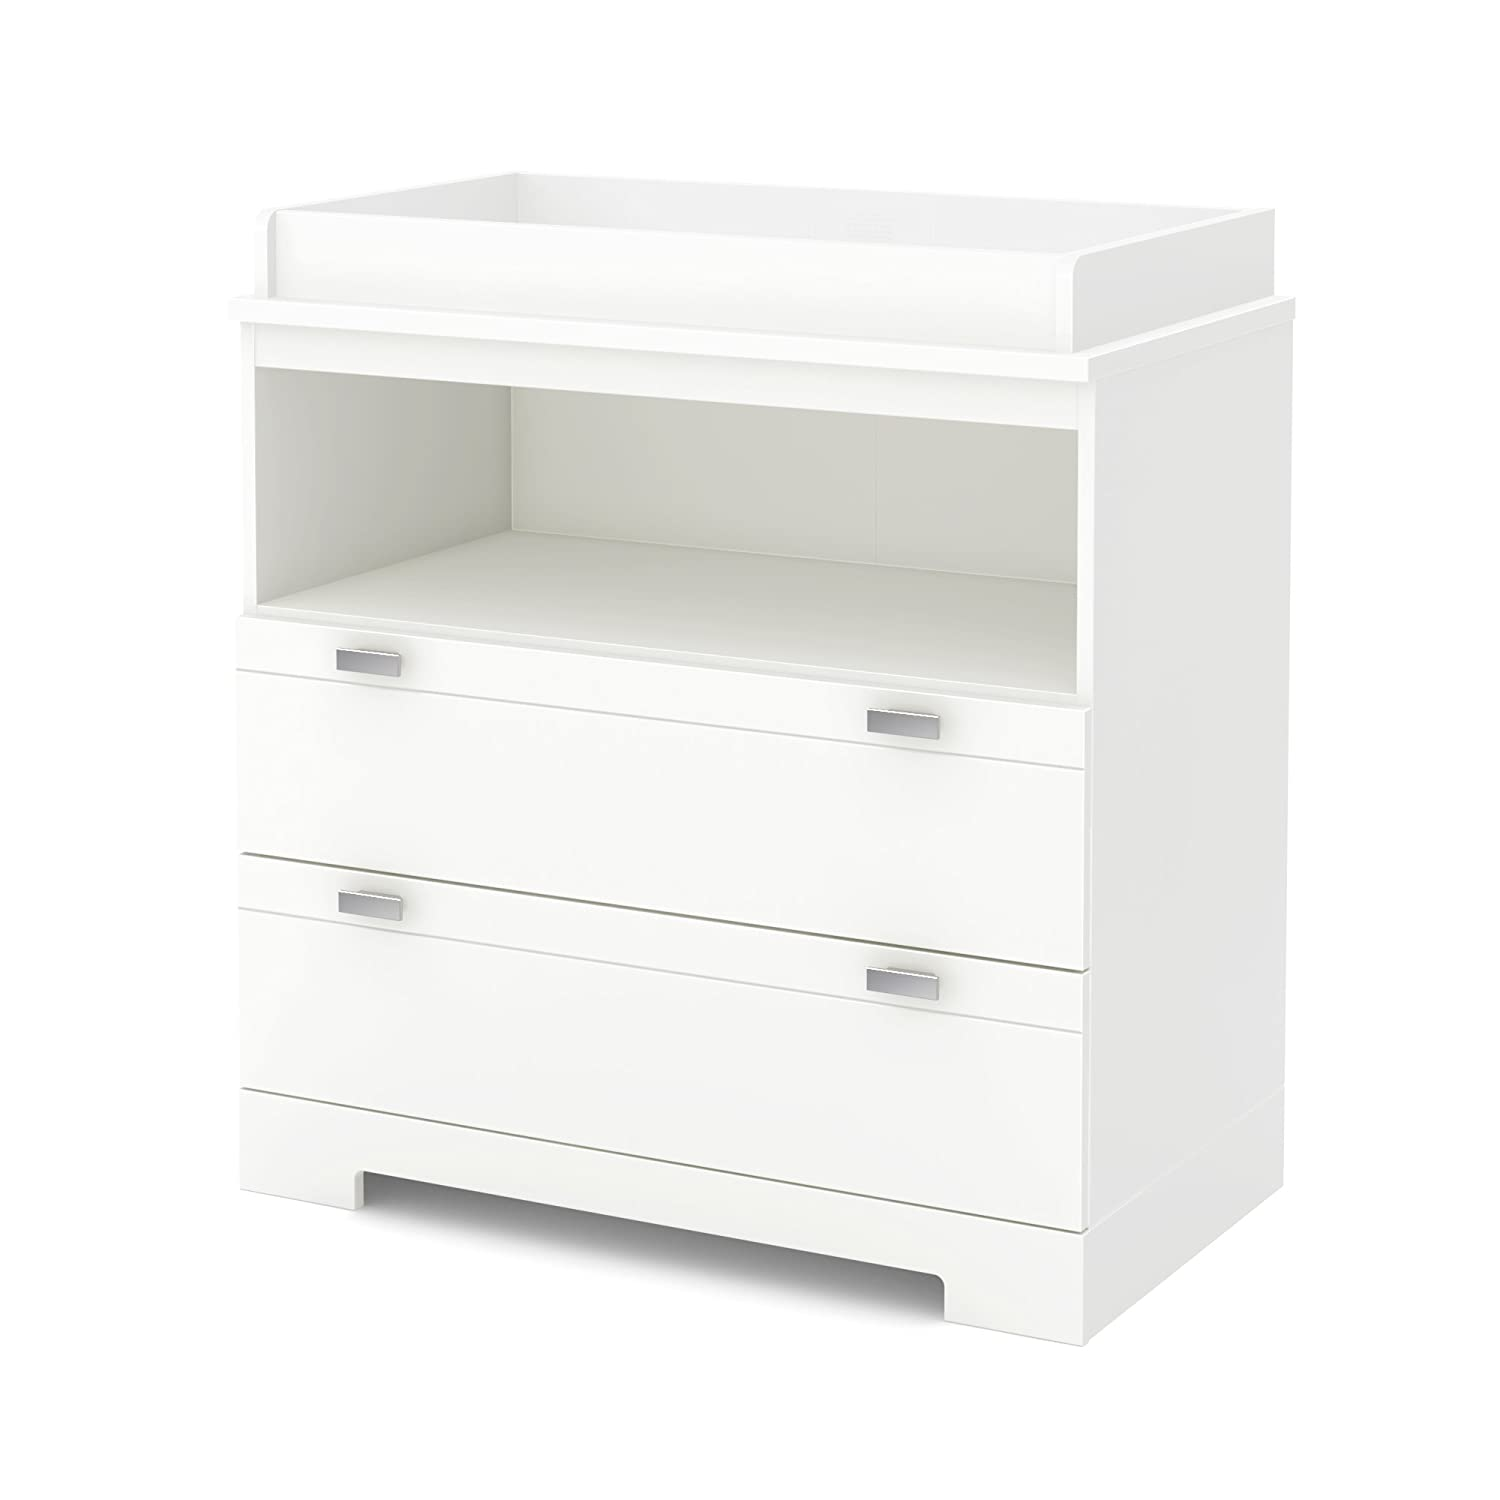 South Shore Reevo Changing Table with Storage, Pure White 3840330